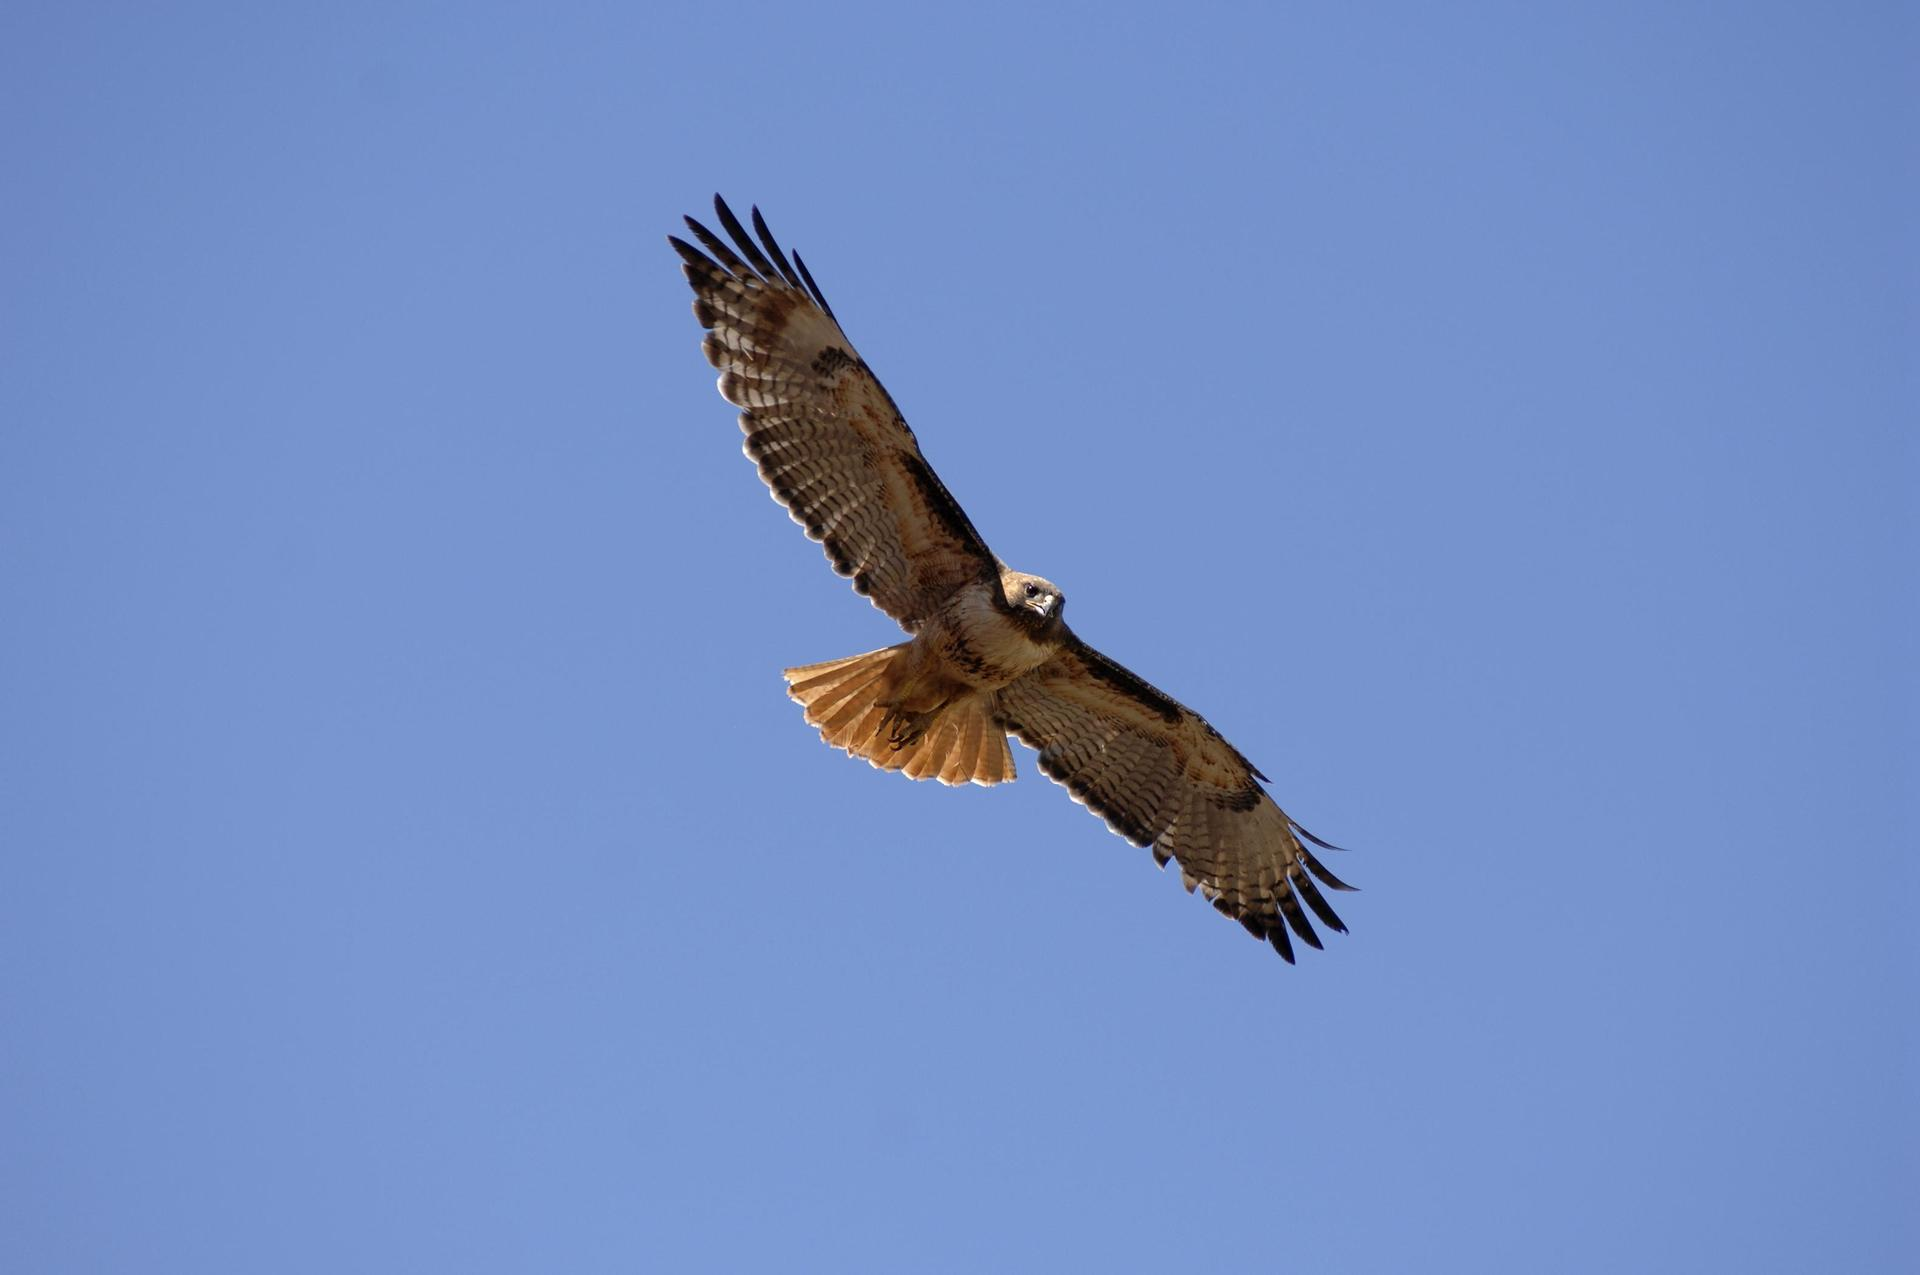 Red Tailed Hawk soaring high